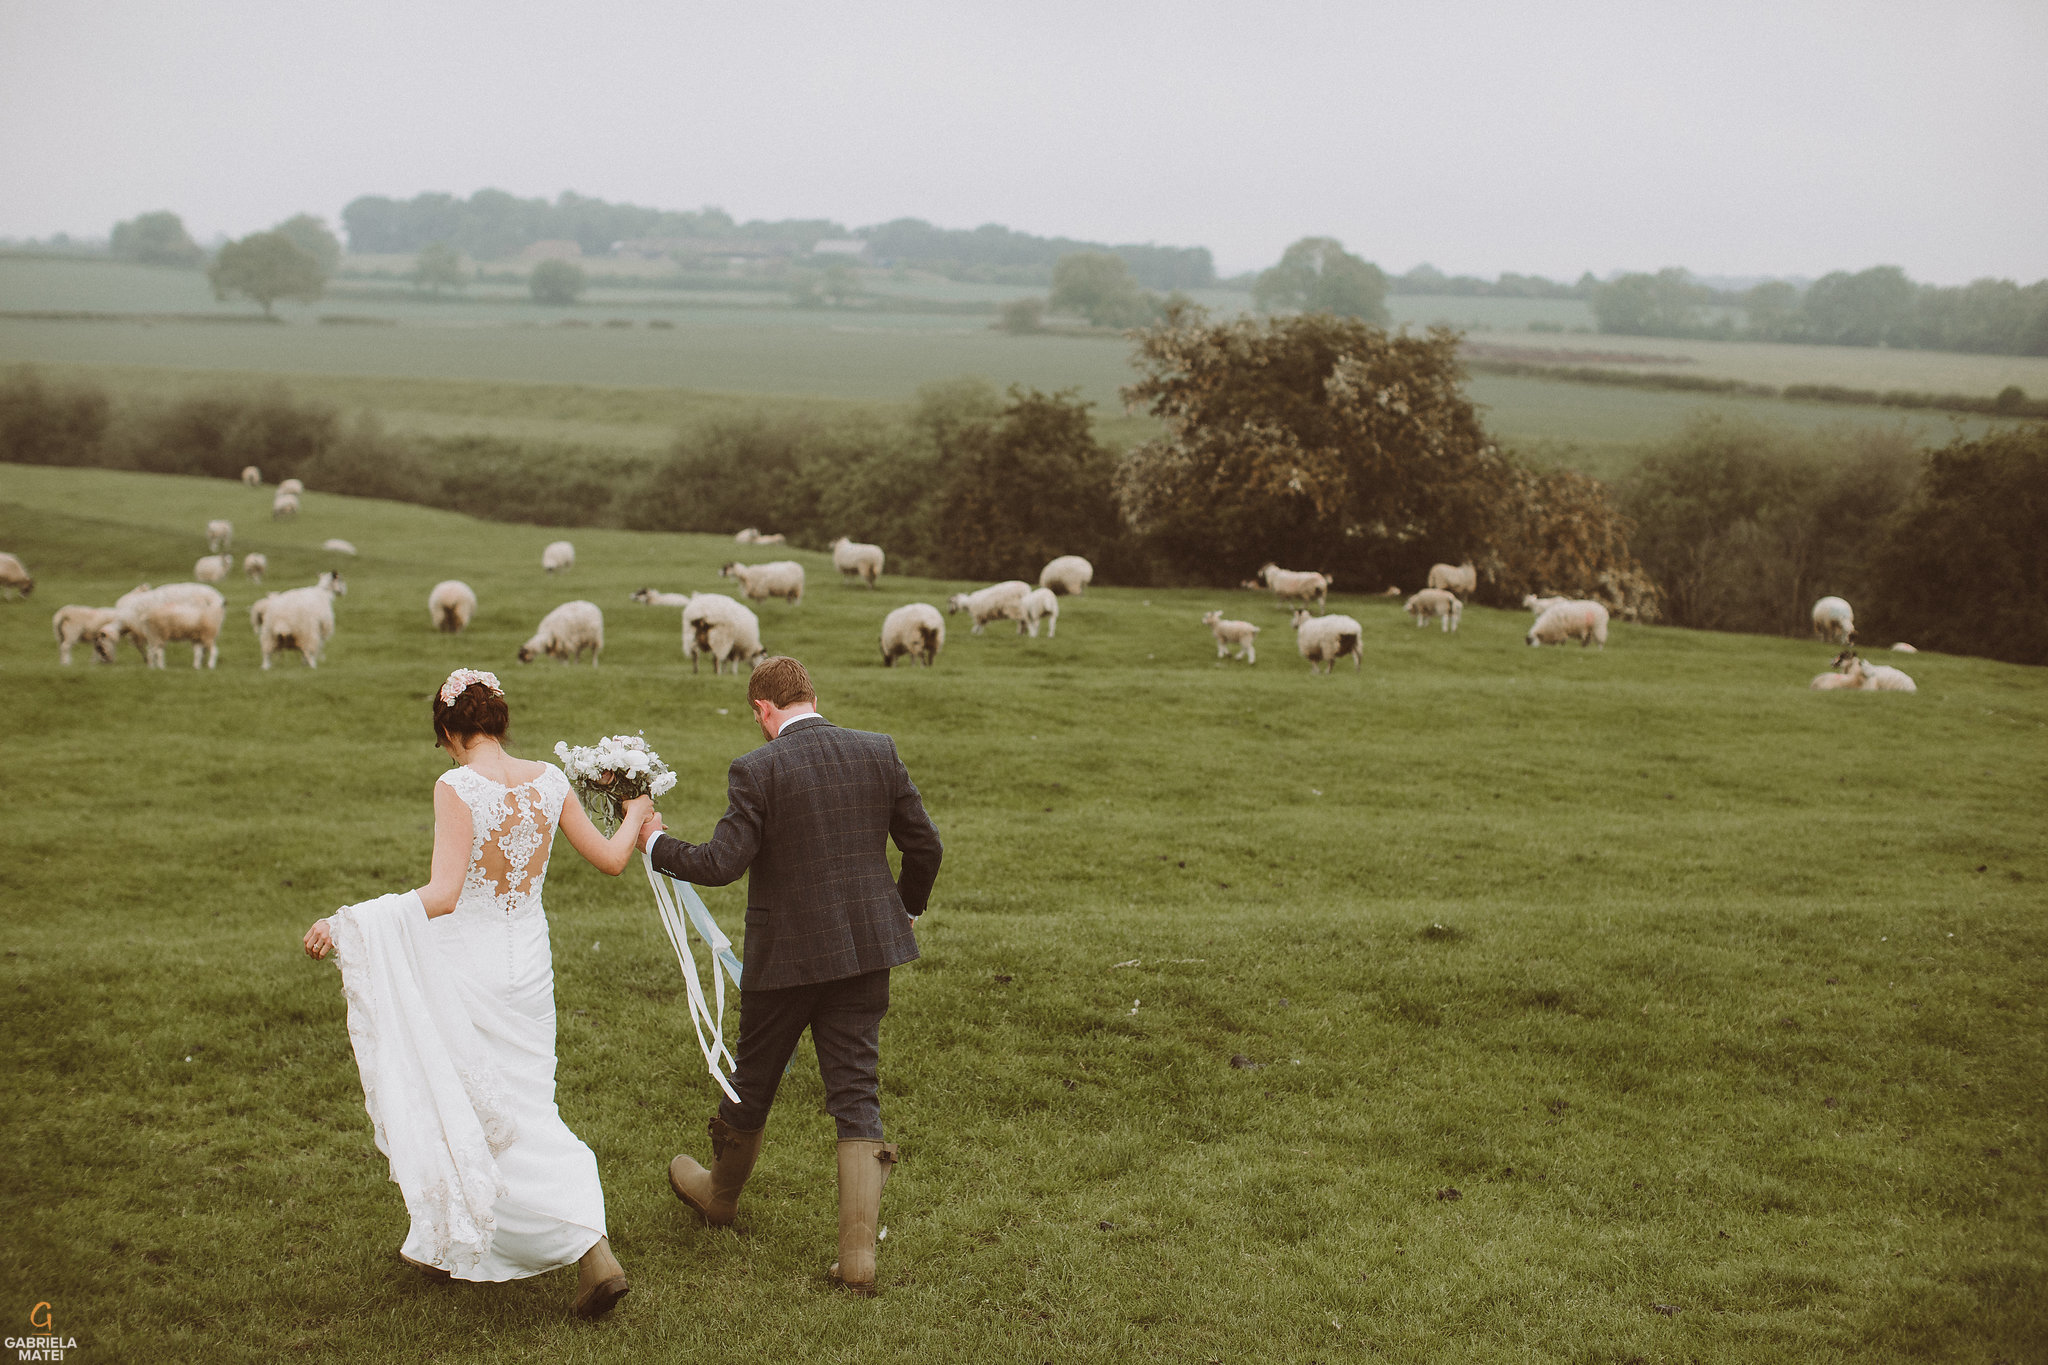 wedding photographer Sussex, countryside wedding, wedding dress and wellies, wellies and weddings